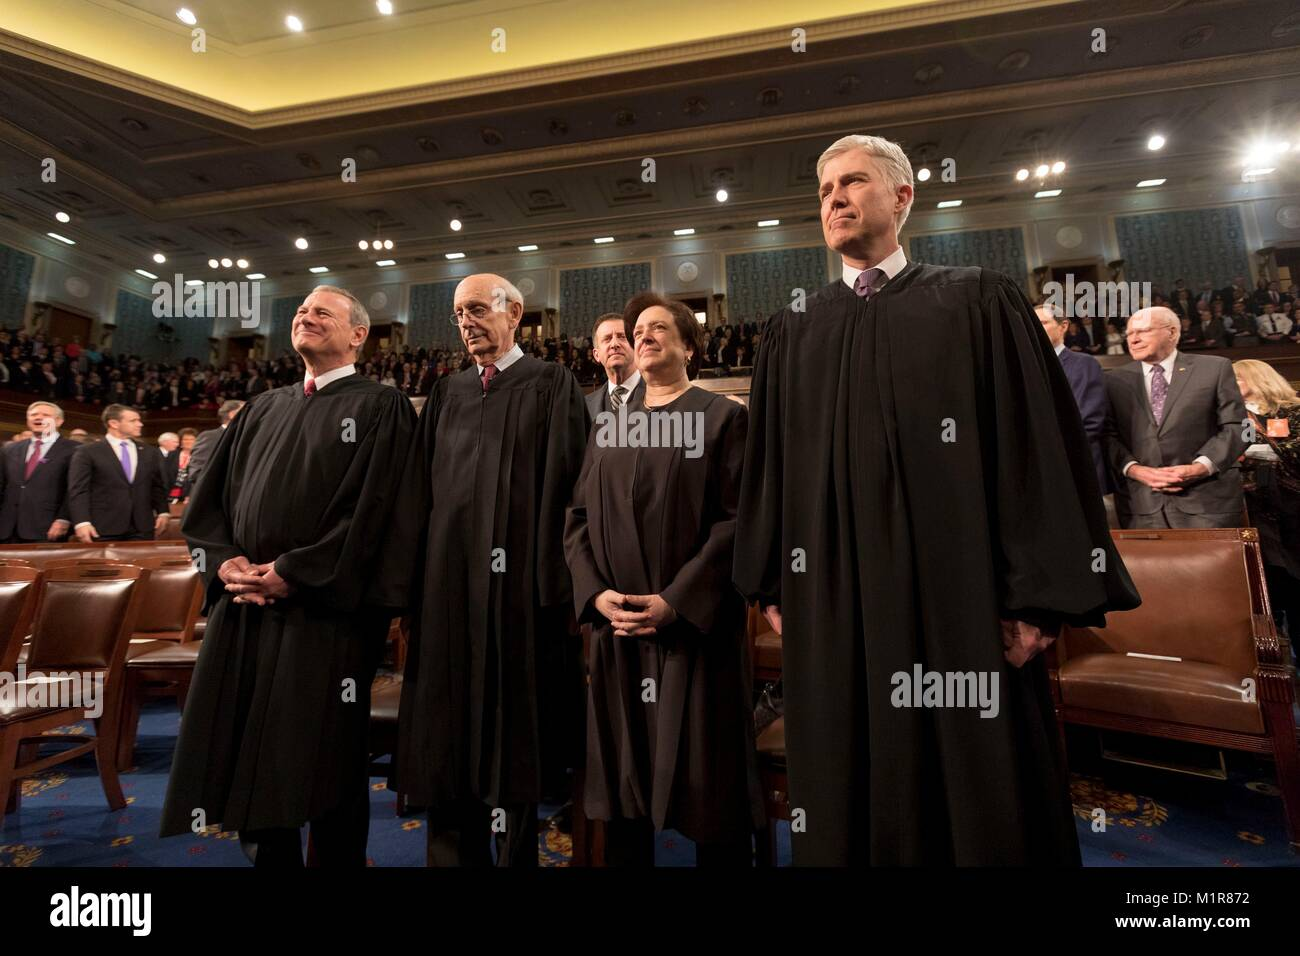 Justices of the U.S Supreme Court stand as President Donald Trump arrives for his first State of the Union address - Stock Image